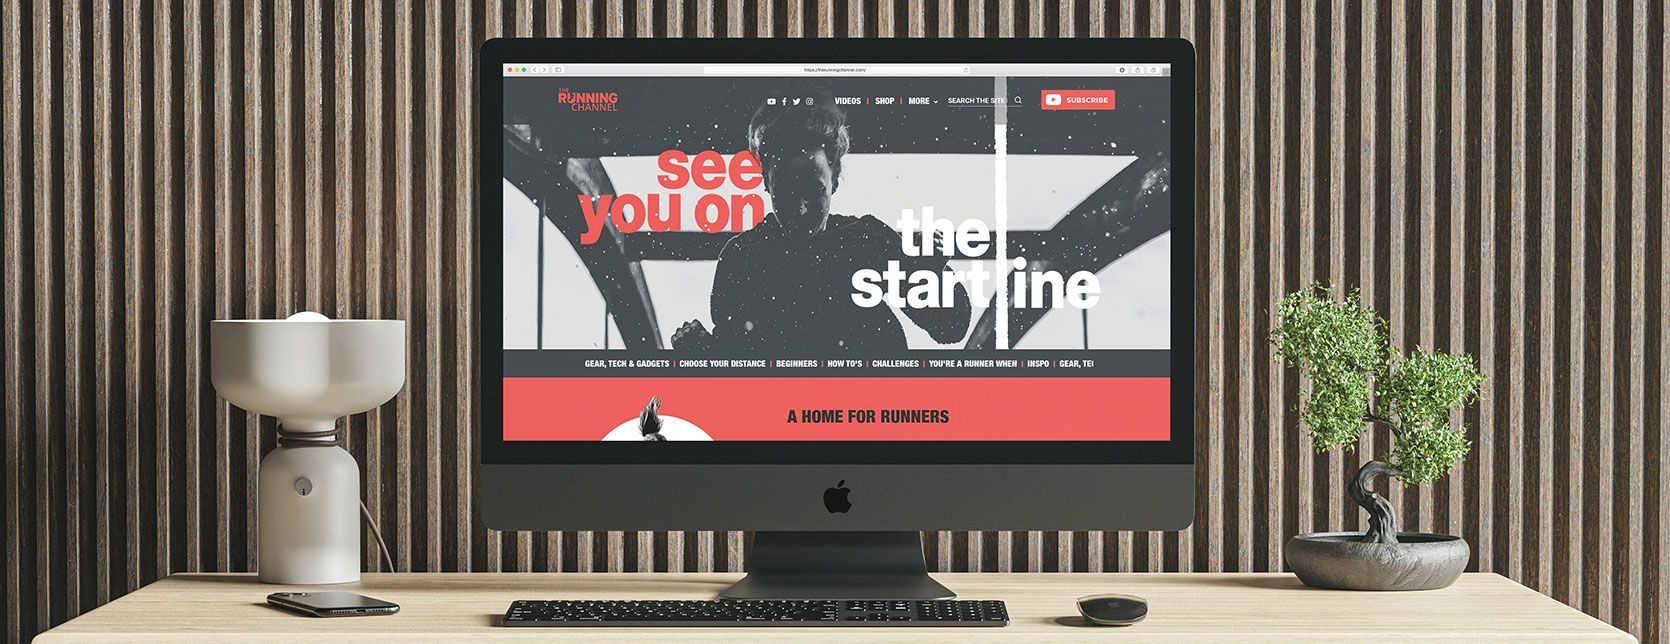 The Running Channel - Web Design Case Study